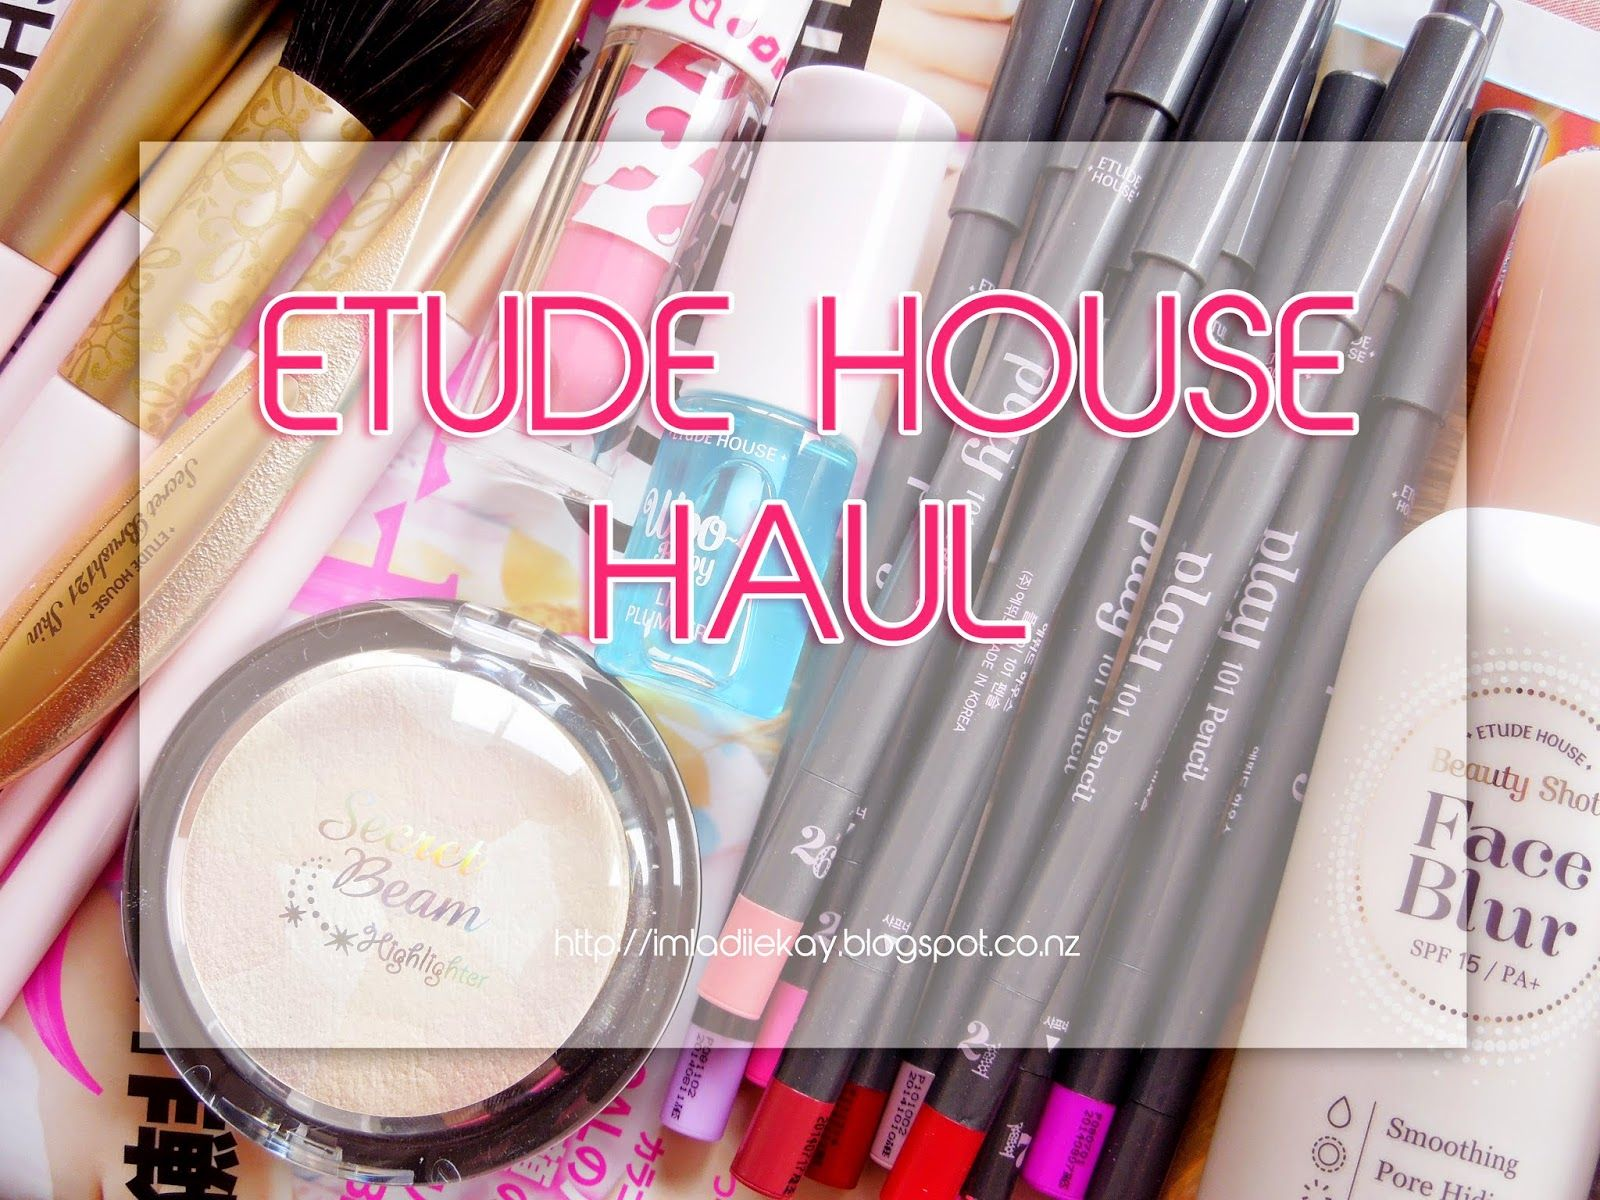 imladiiekay ♡ Beauty & Lifestyle Blog: ETUDE HOUSE Haul + Products First Impressions & Online Store Review